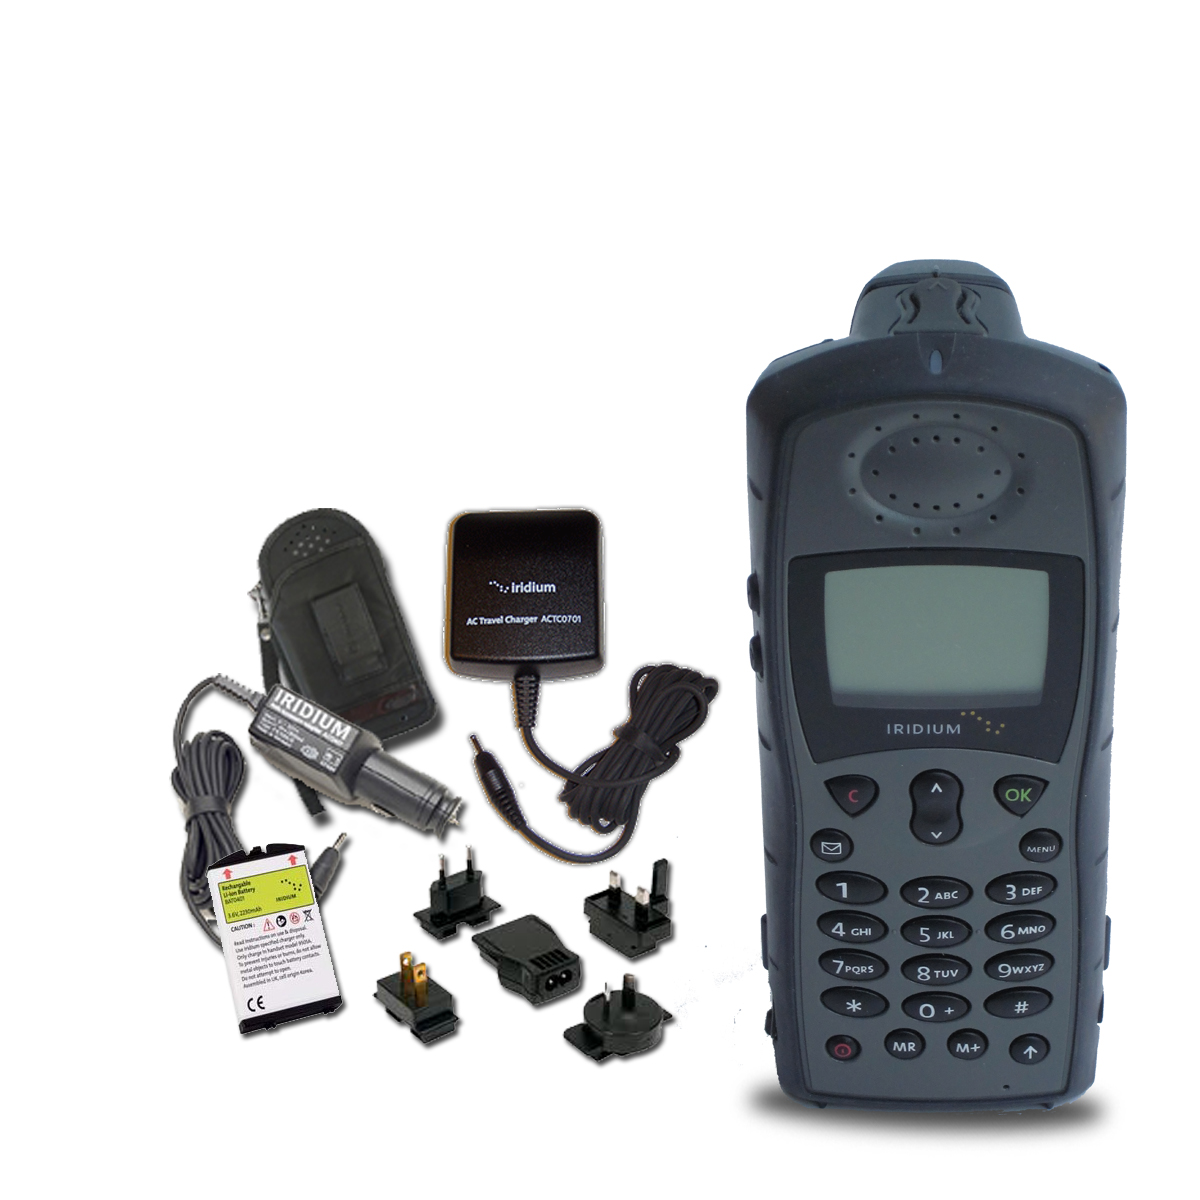 iridium-9505a-with-accesories.jpg